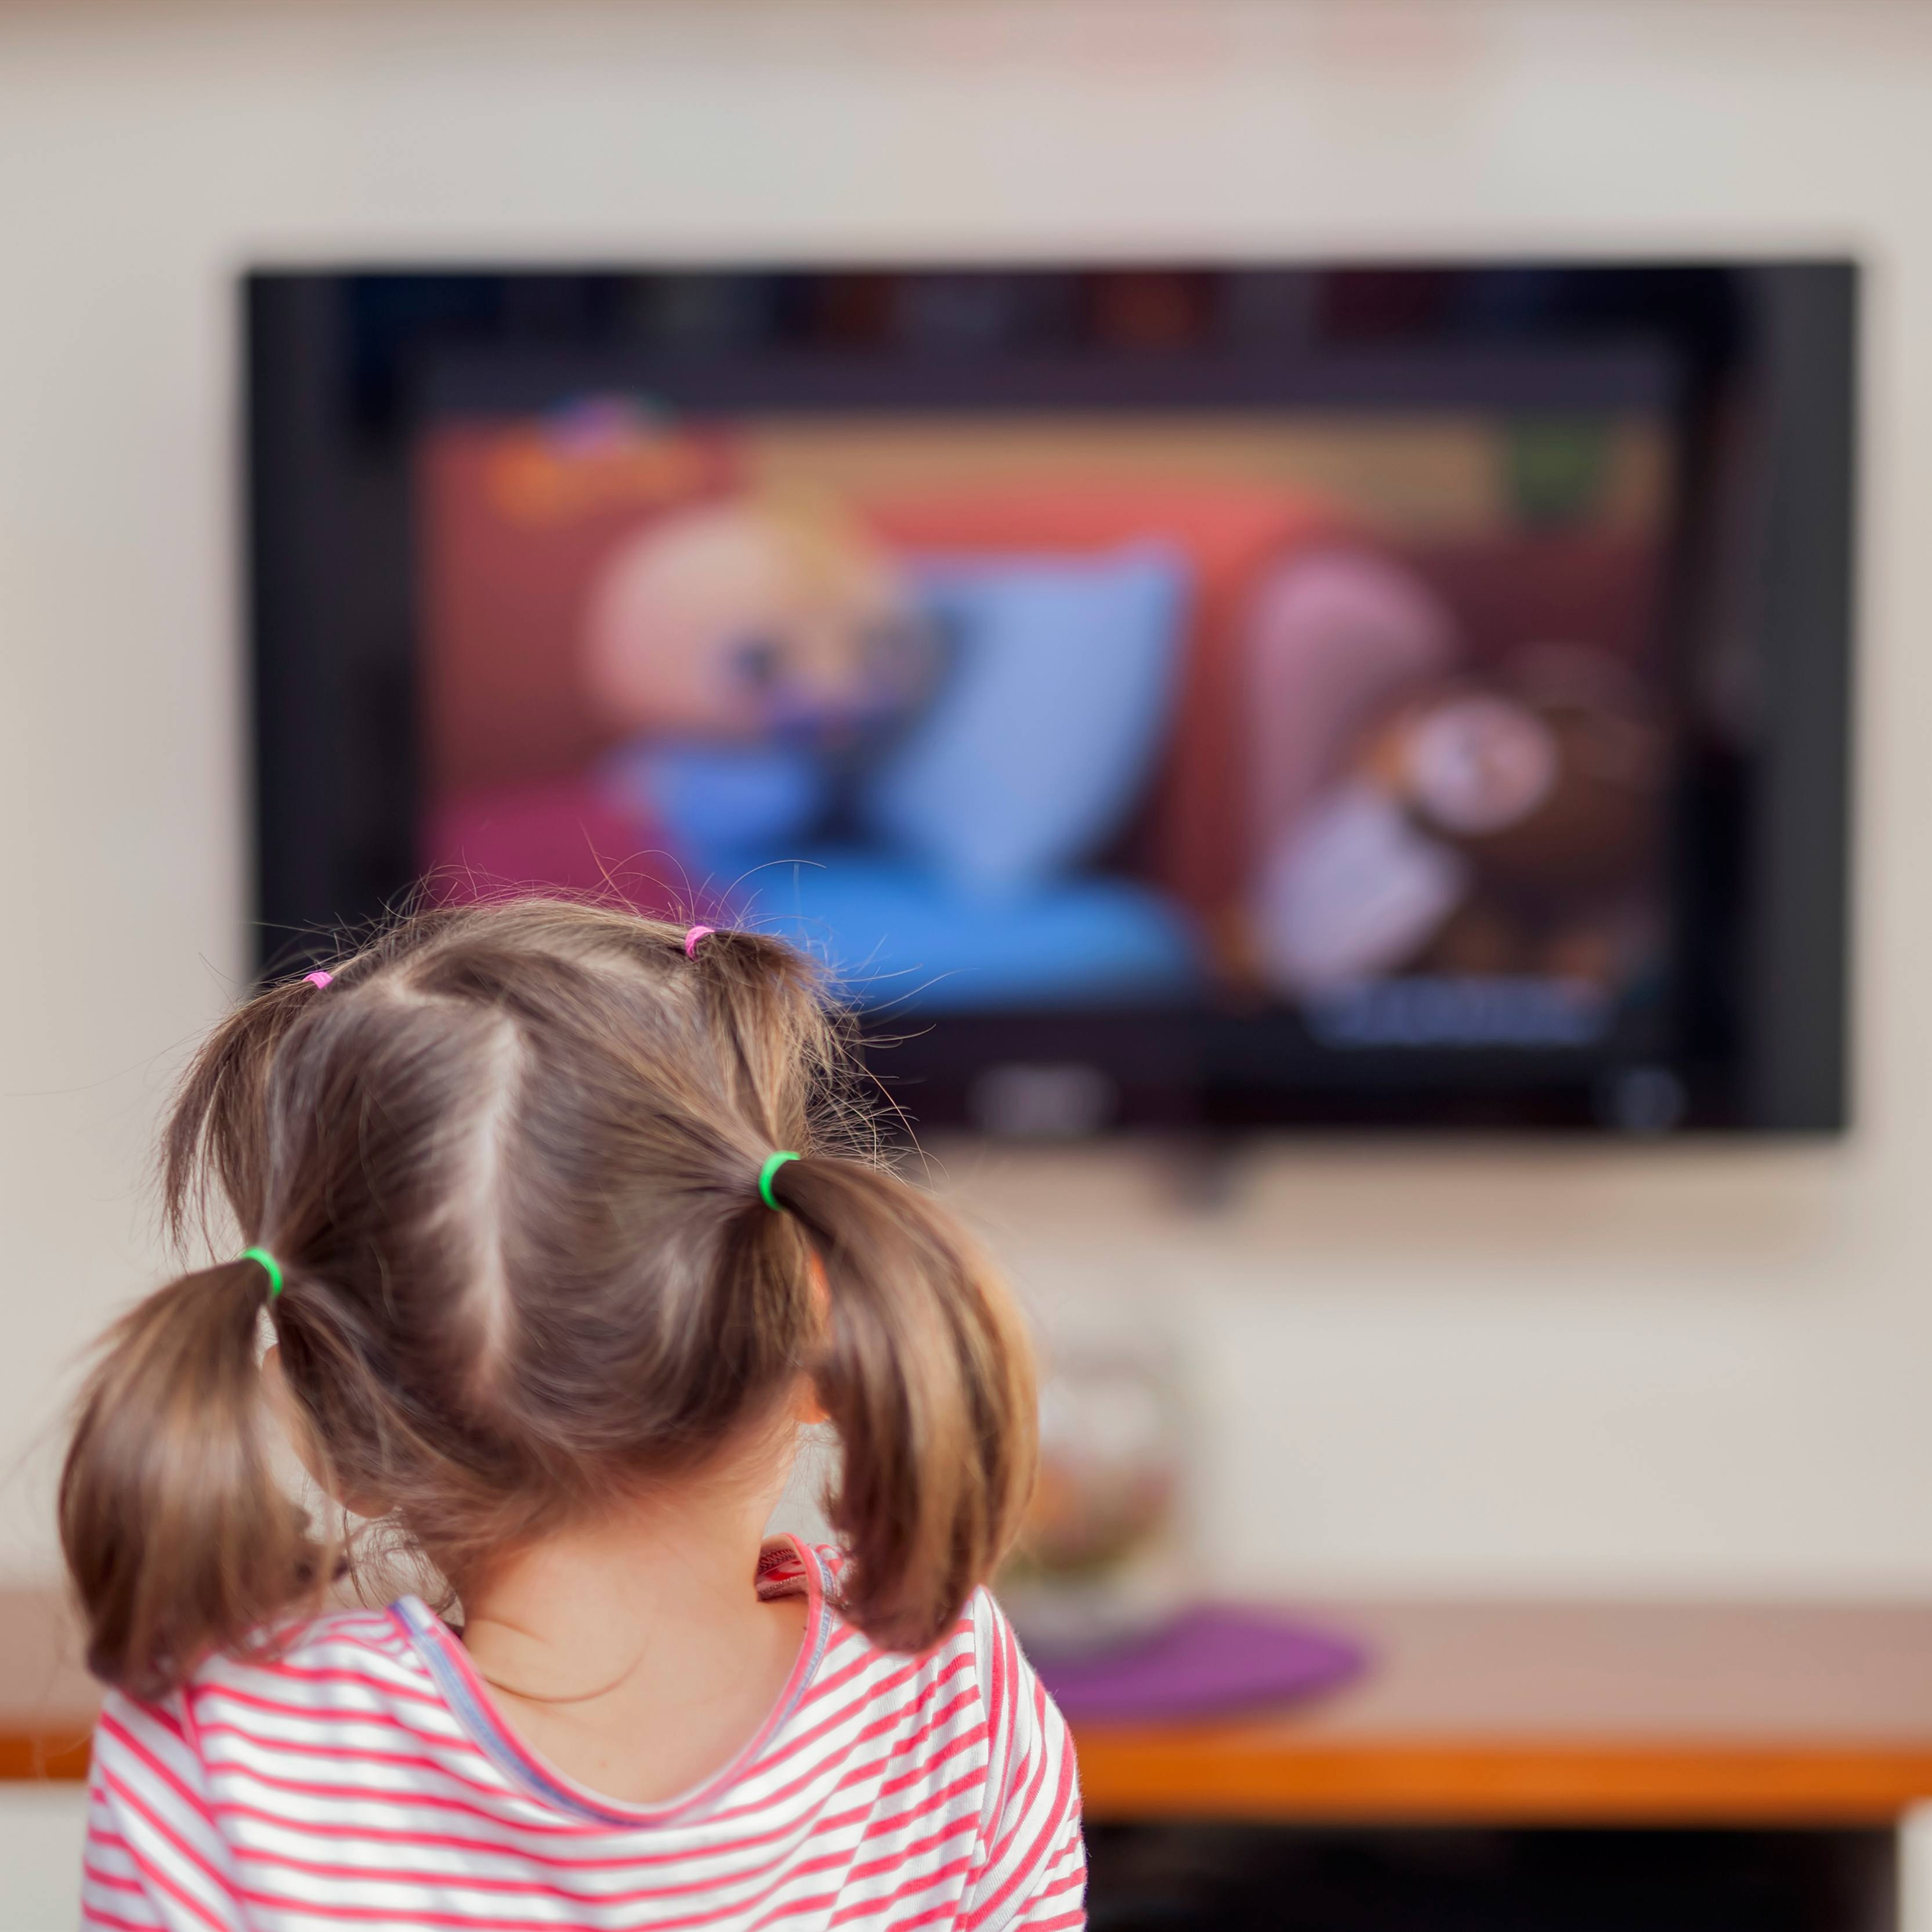 a little girl sitting in front of a TV screen